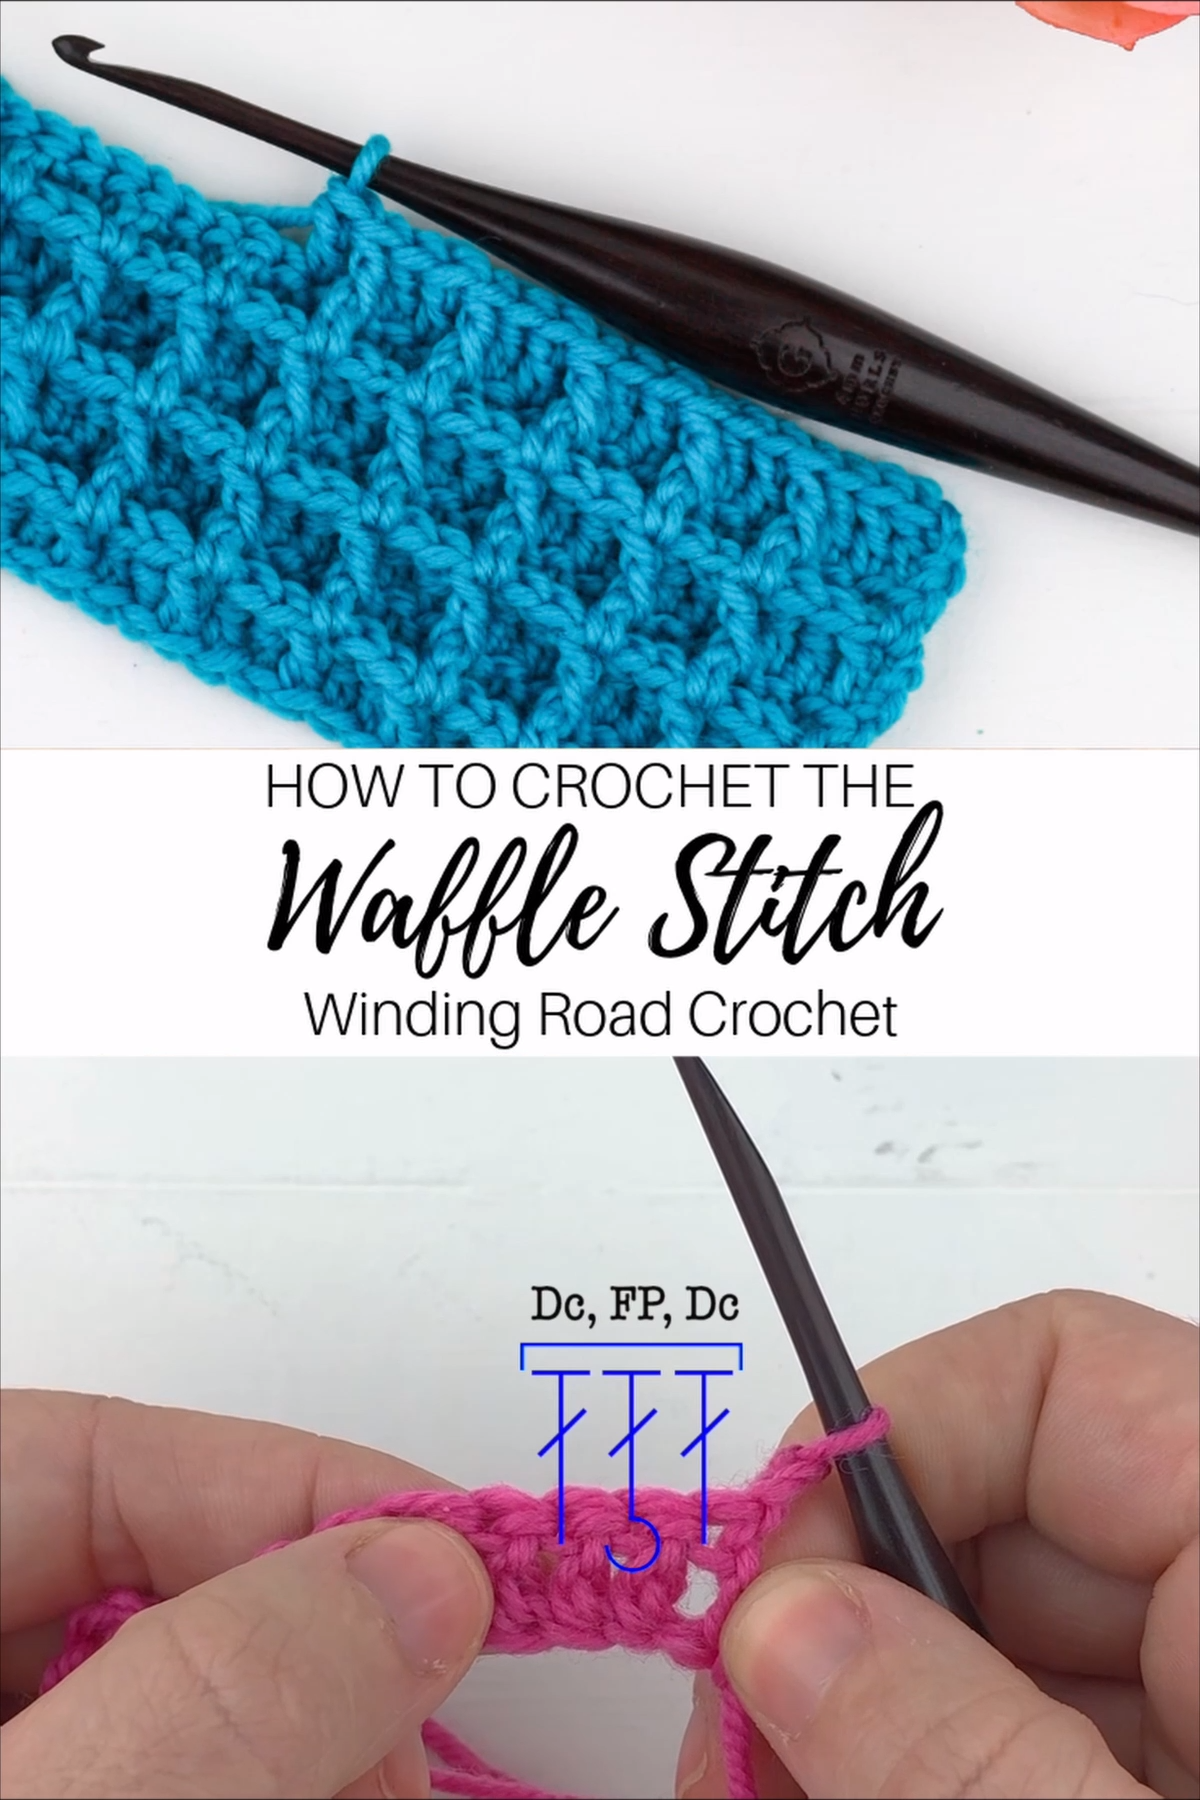 Crochet Waffle Stitch Video and Photo Tutorial